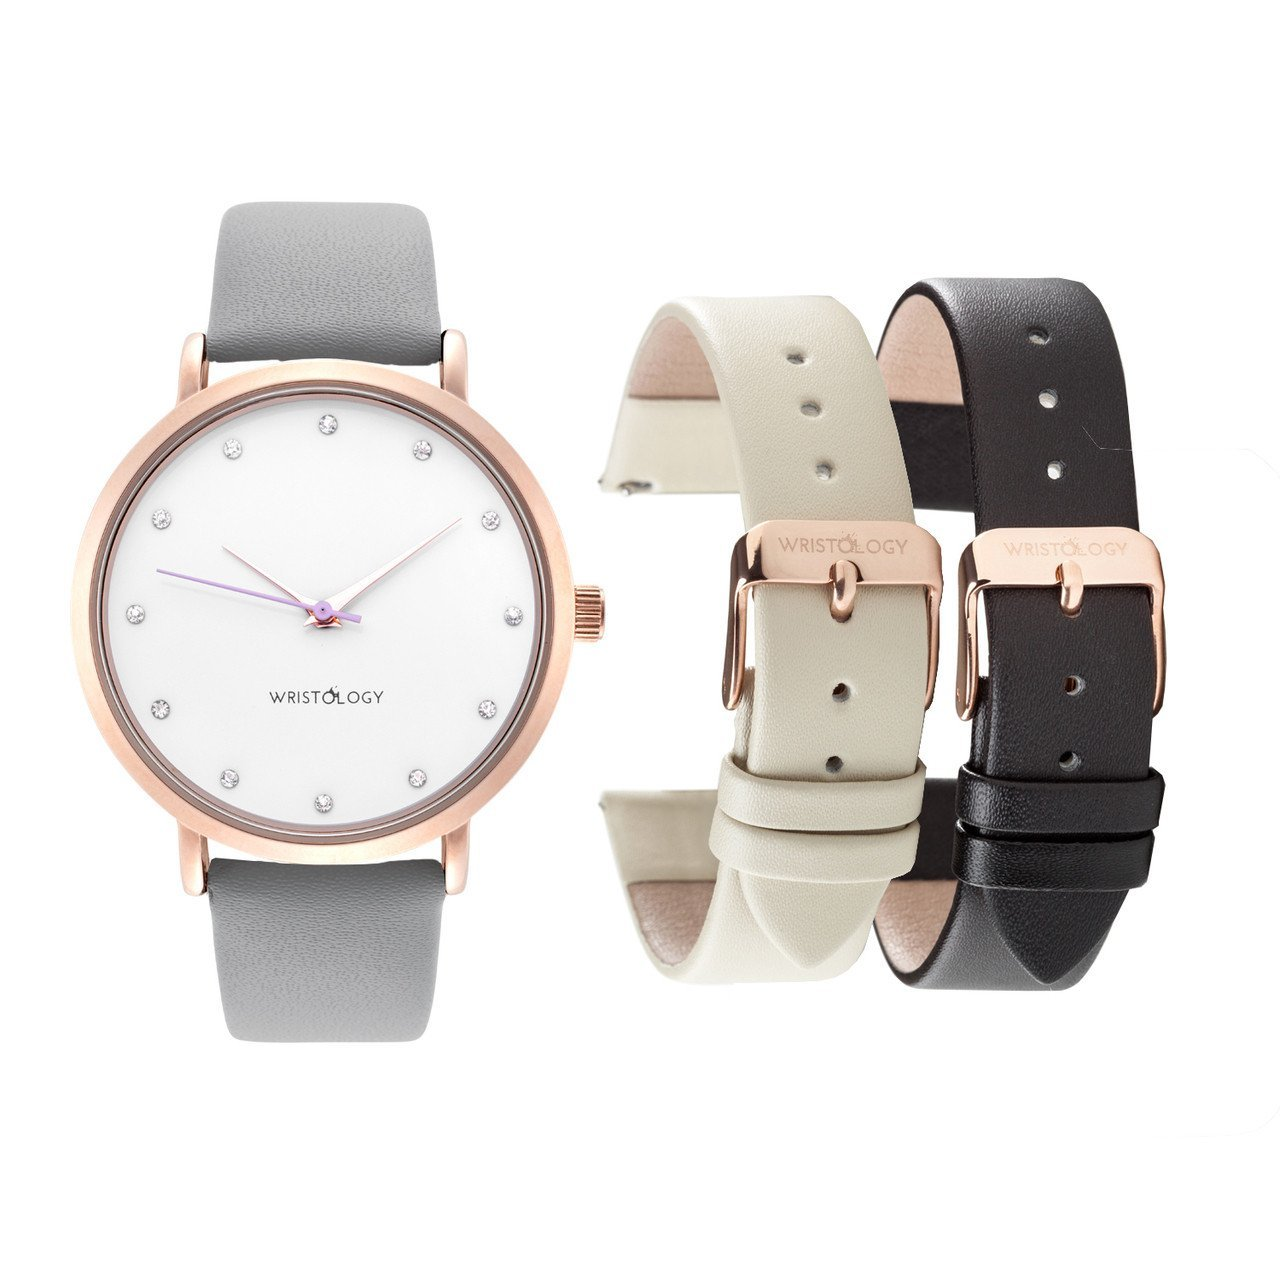 WRISTOLOGY Olivia Womens Rose Gold Crystal Boyfriend Watch Set 3 Straps Grey, Black Beige Leather Bands